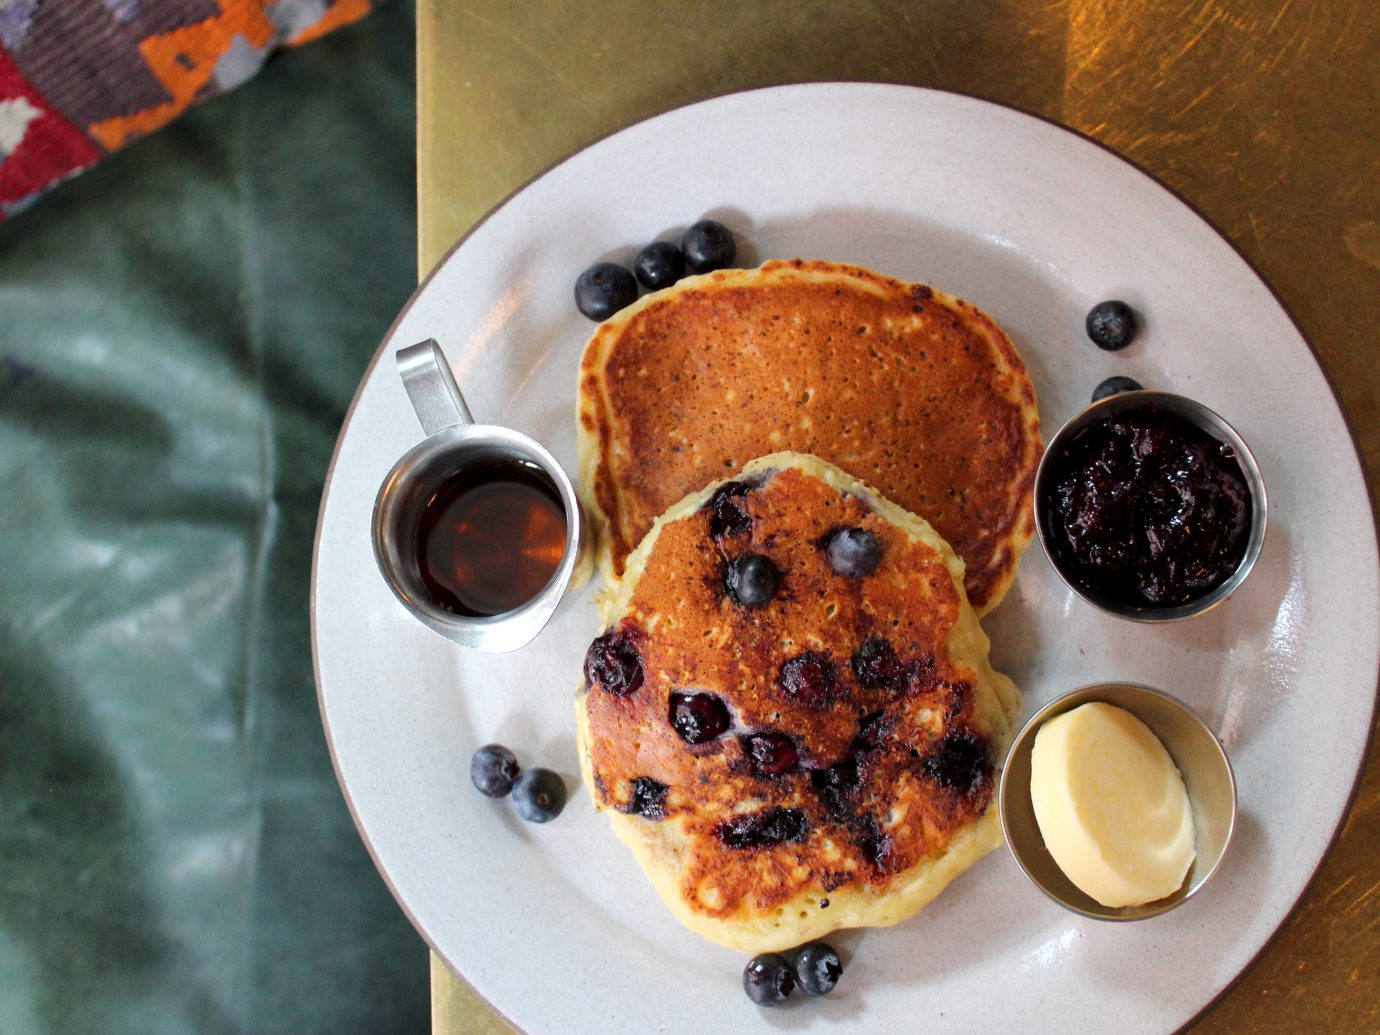 Blueberry pancakes at Best Girl in LA